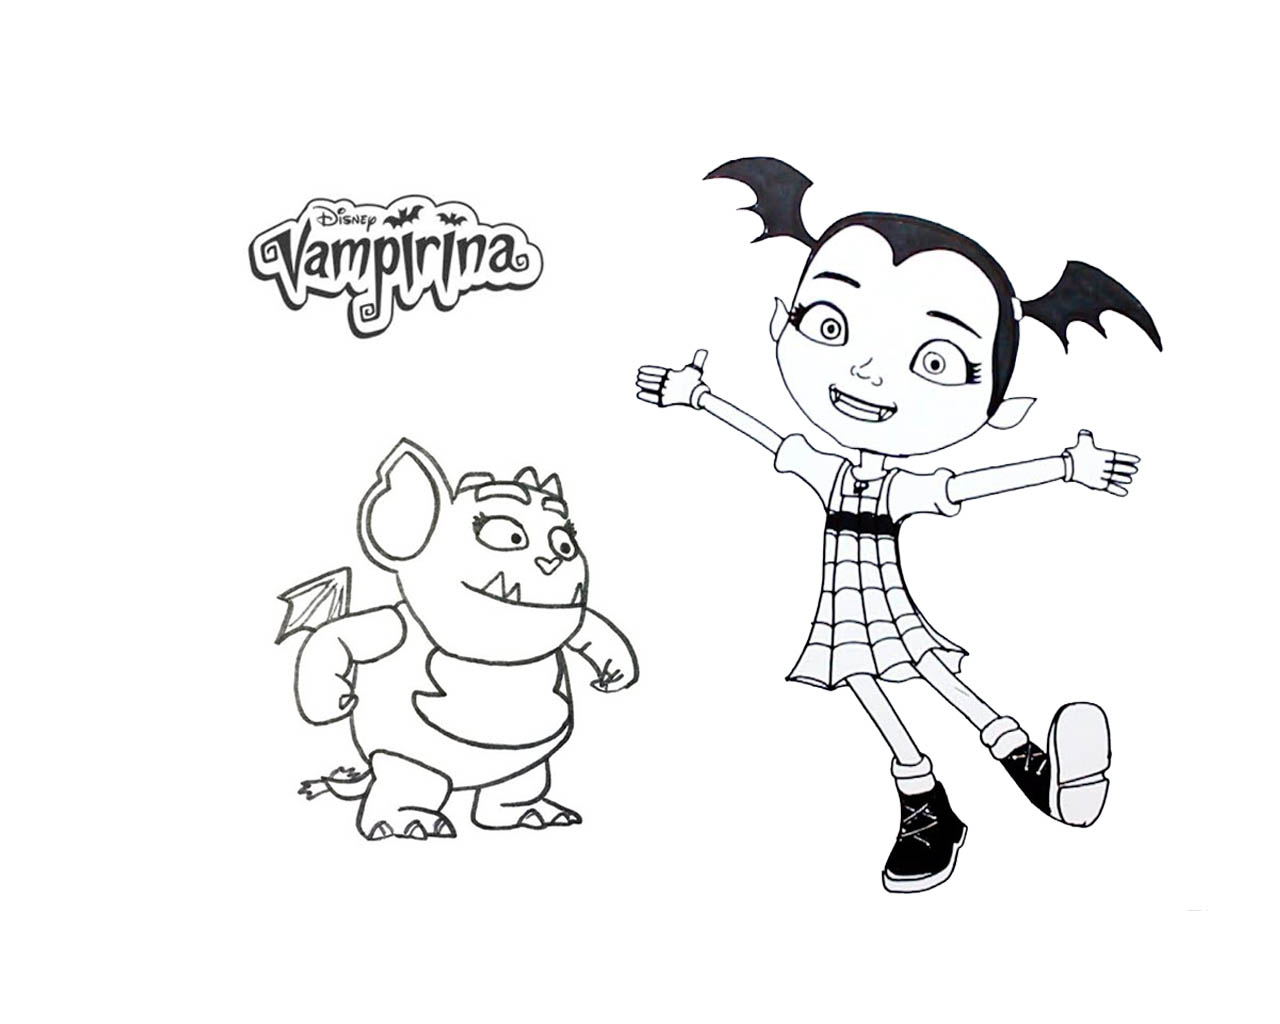 Vampirina Coloring book Printable